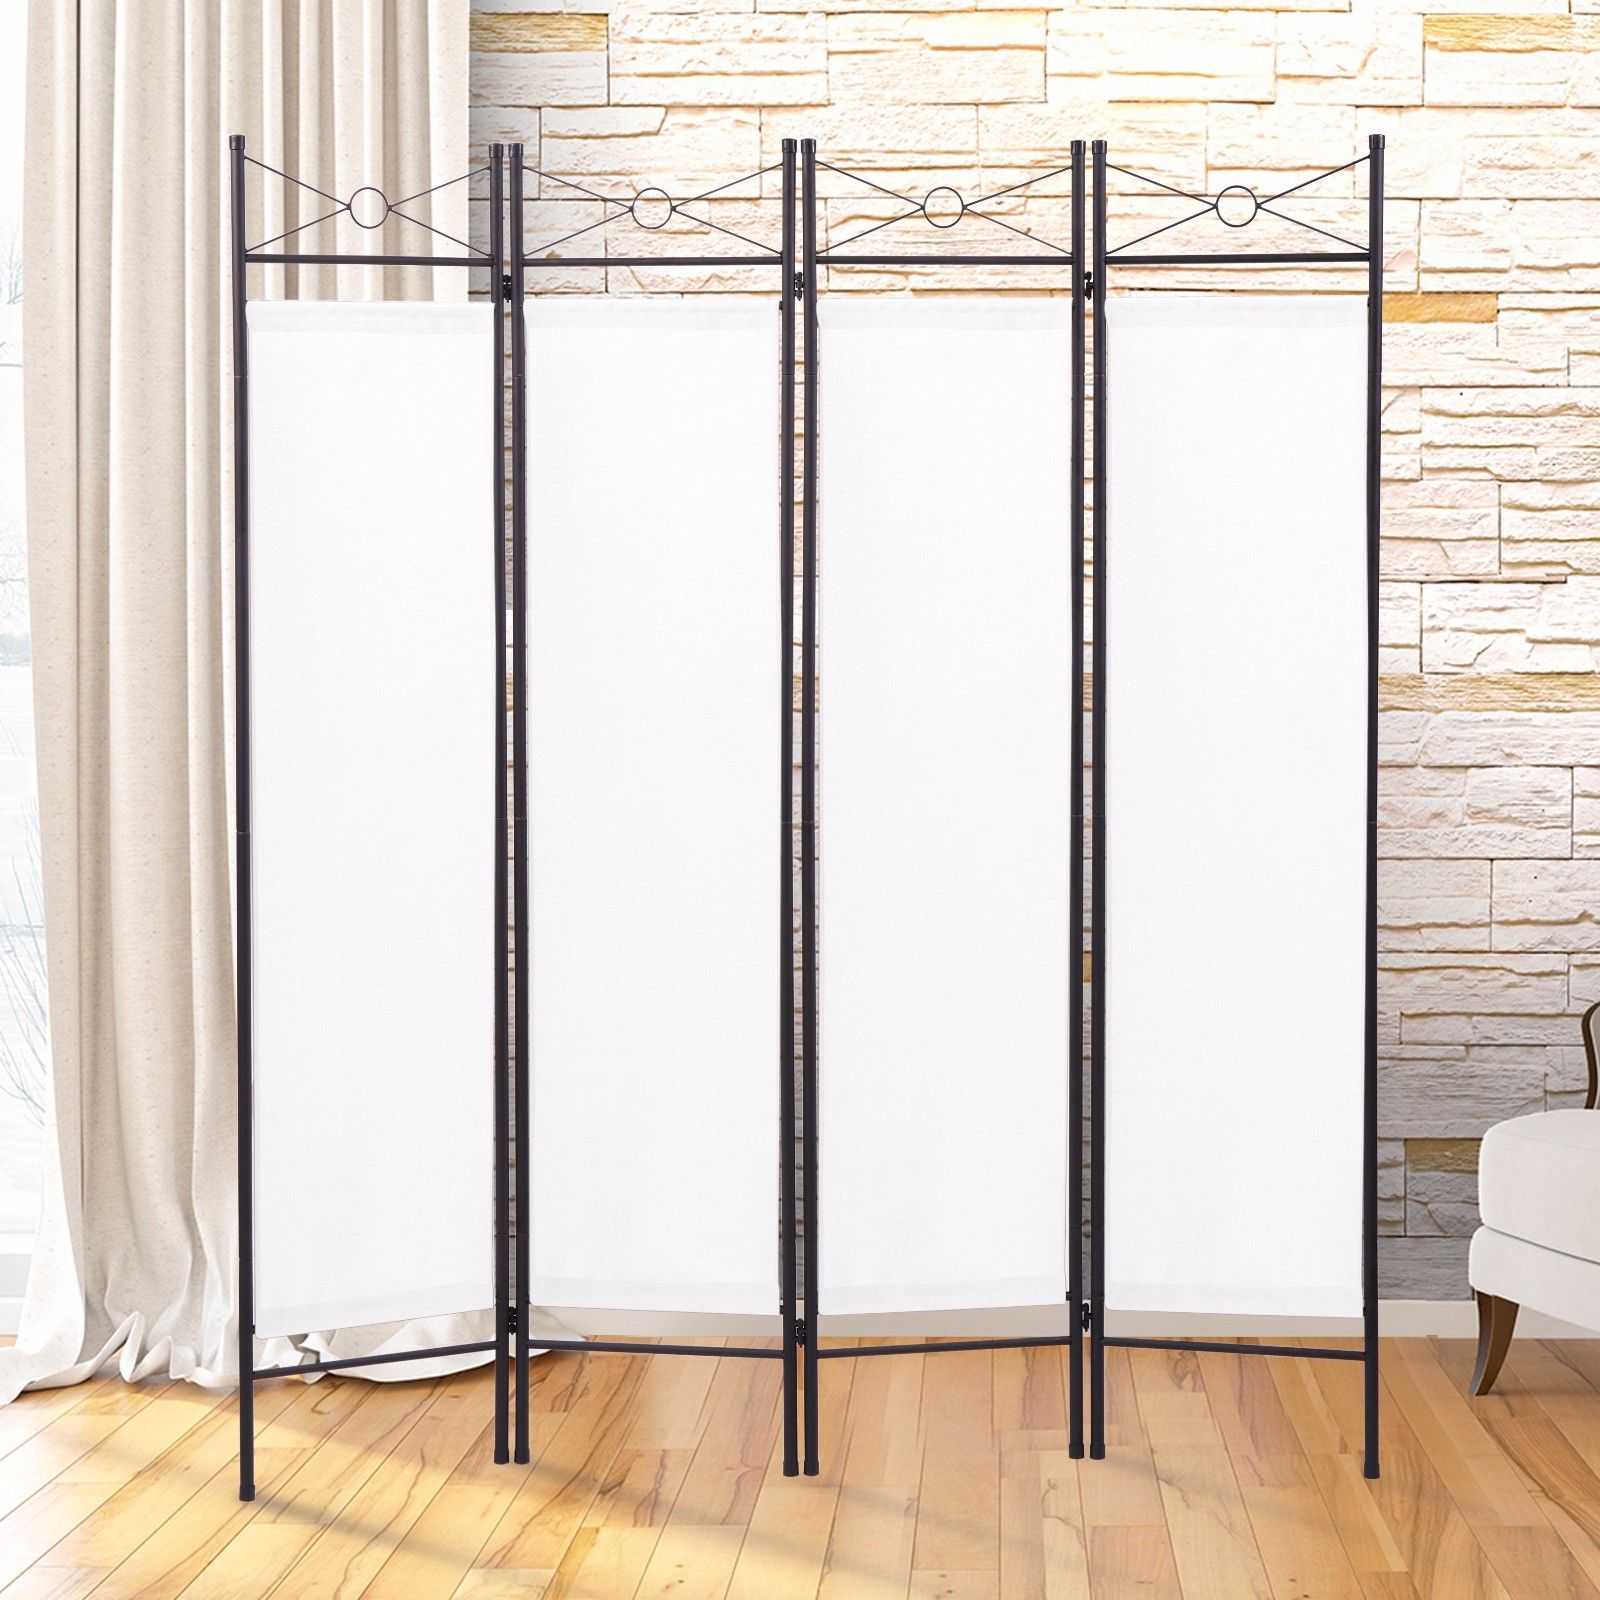 lazymoon 4panel steel room divider screen fabric folding partition home office privacy screen white